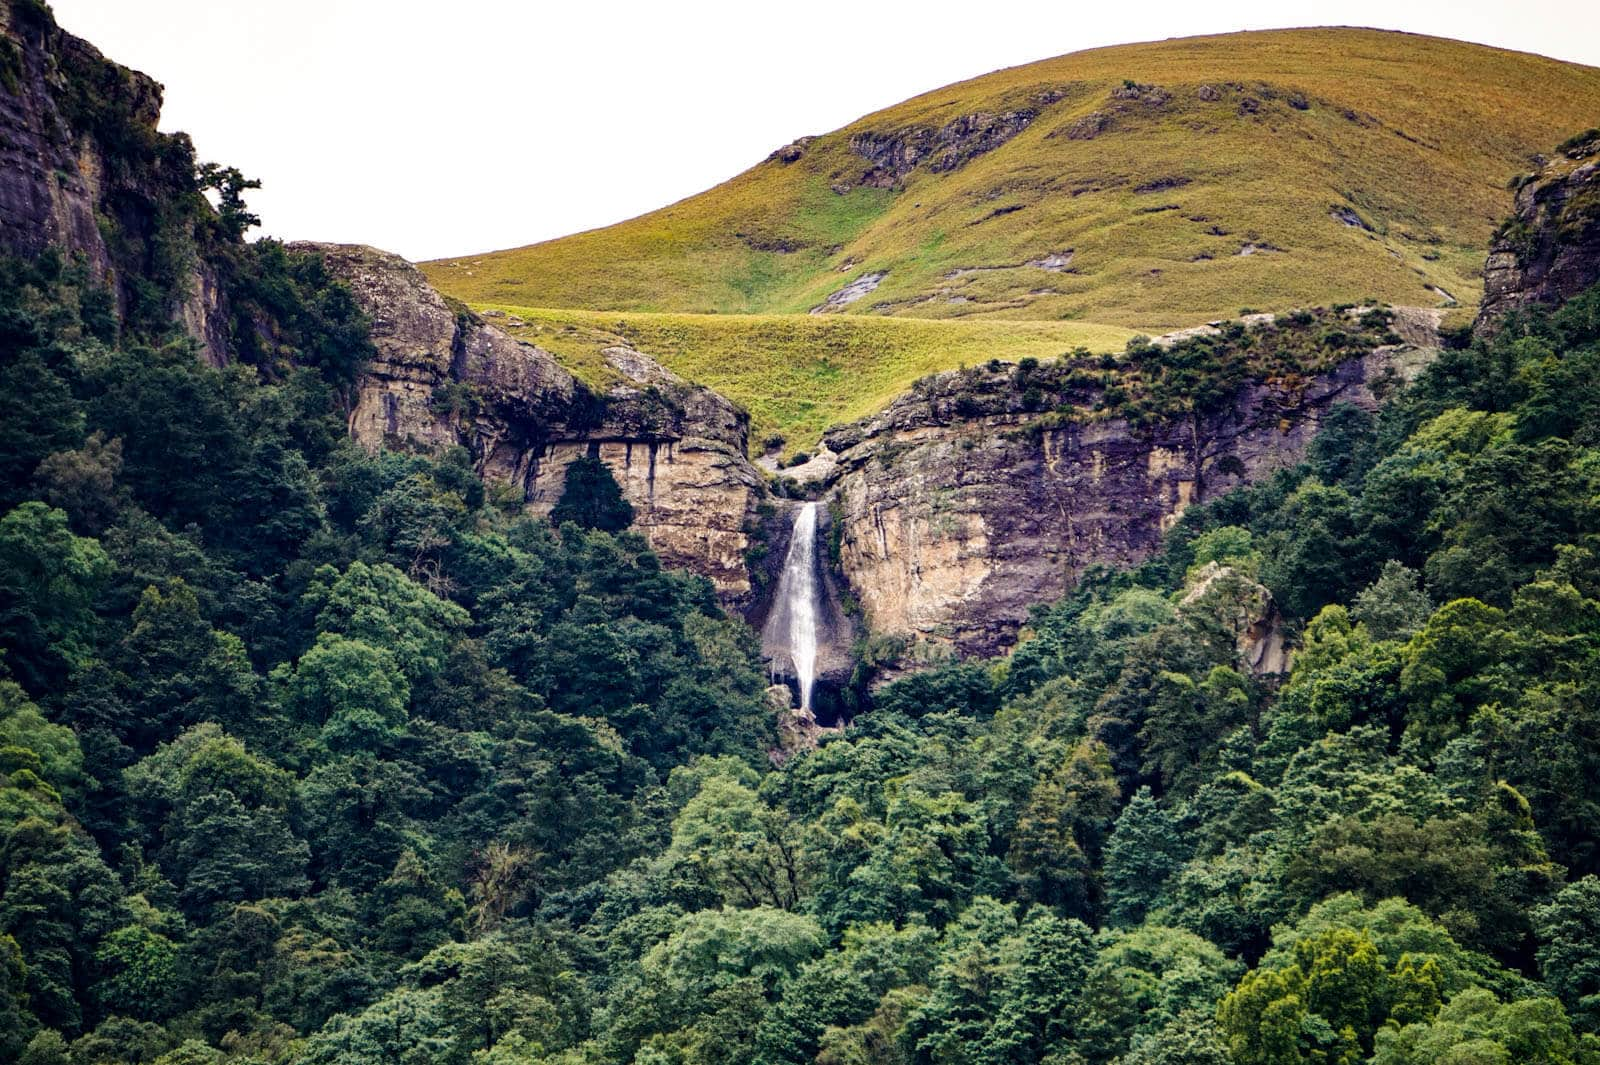 Wasserfall, Royal Natal National Park